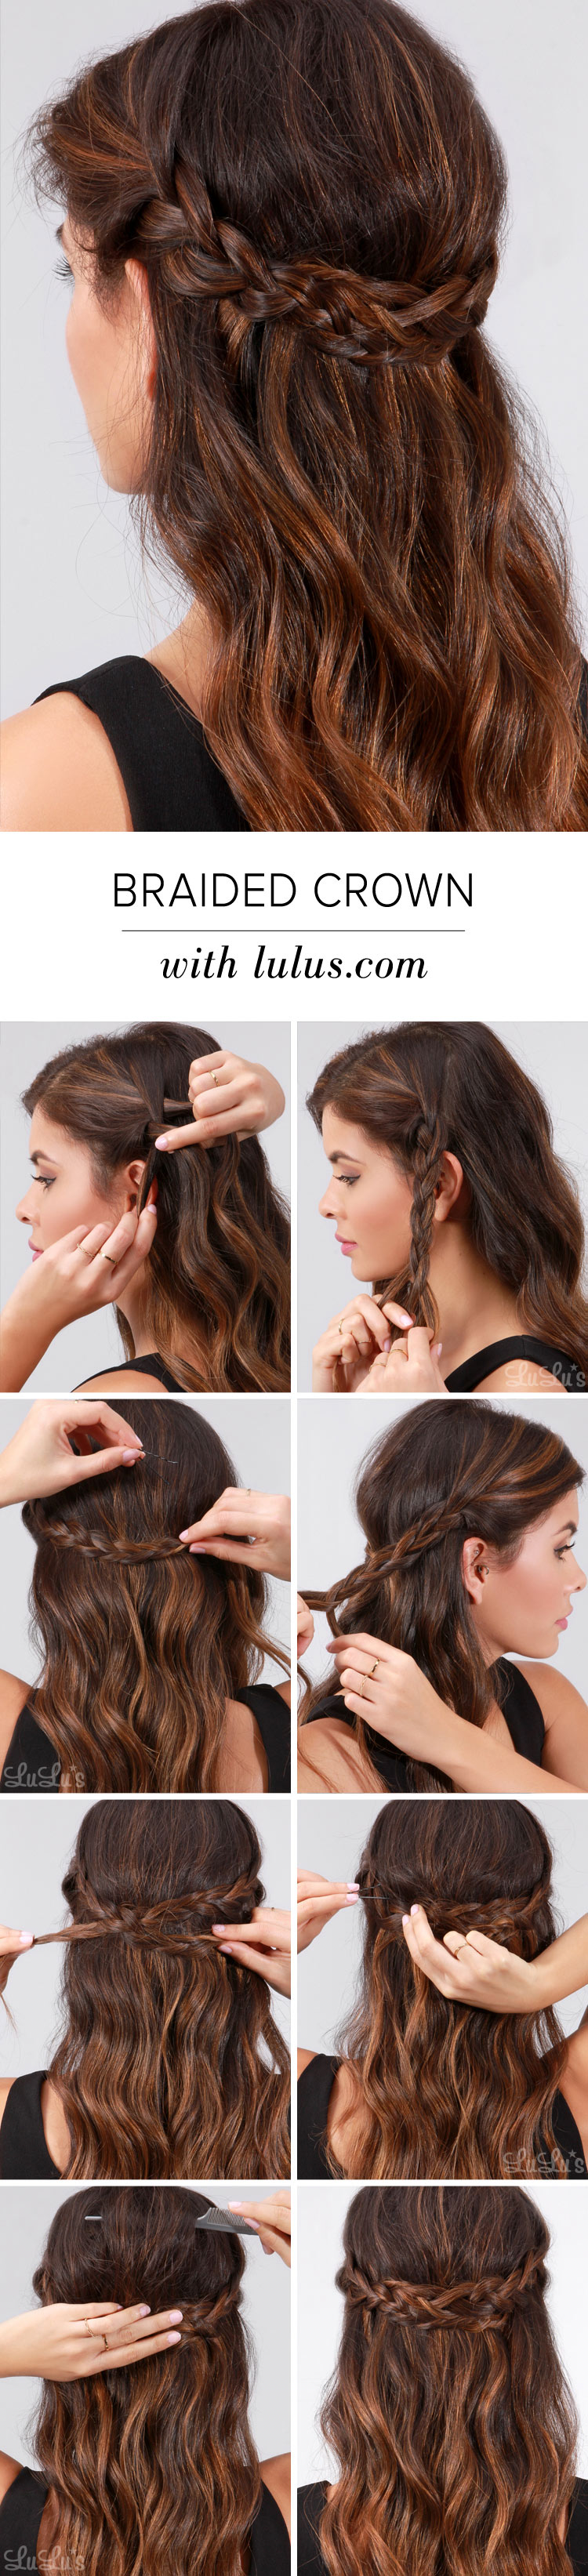 Lulus how to braided crown hair tutorial lulus fashion blog lulus how to braided crown hair tutorial at lulus solutioingenieria Images